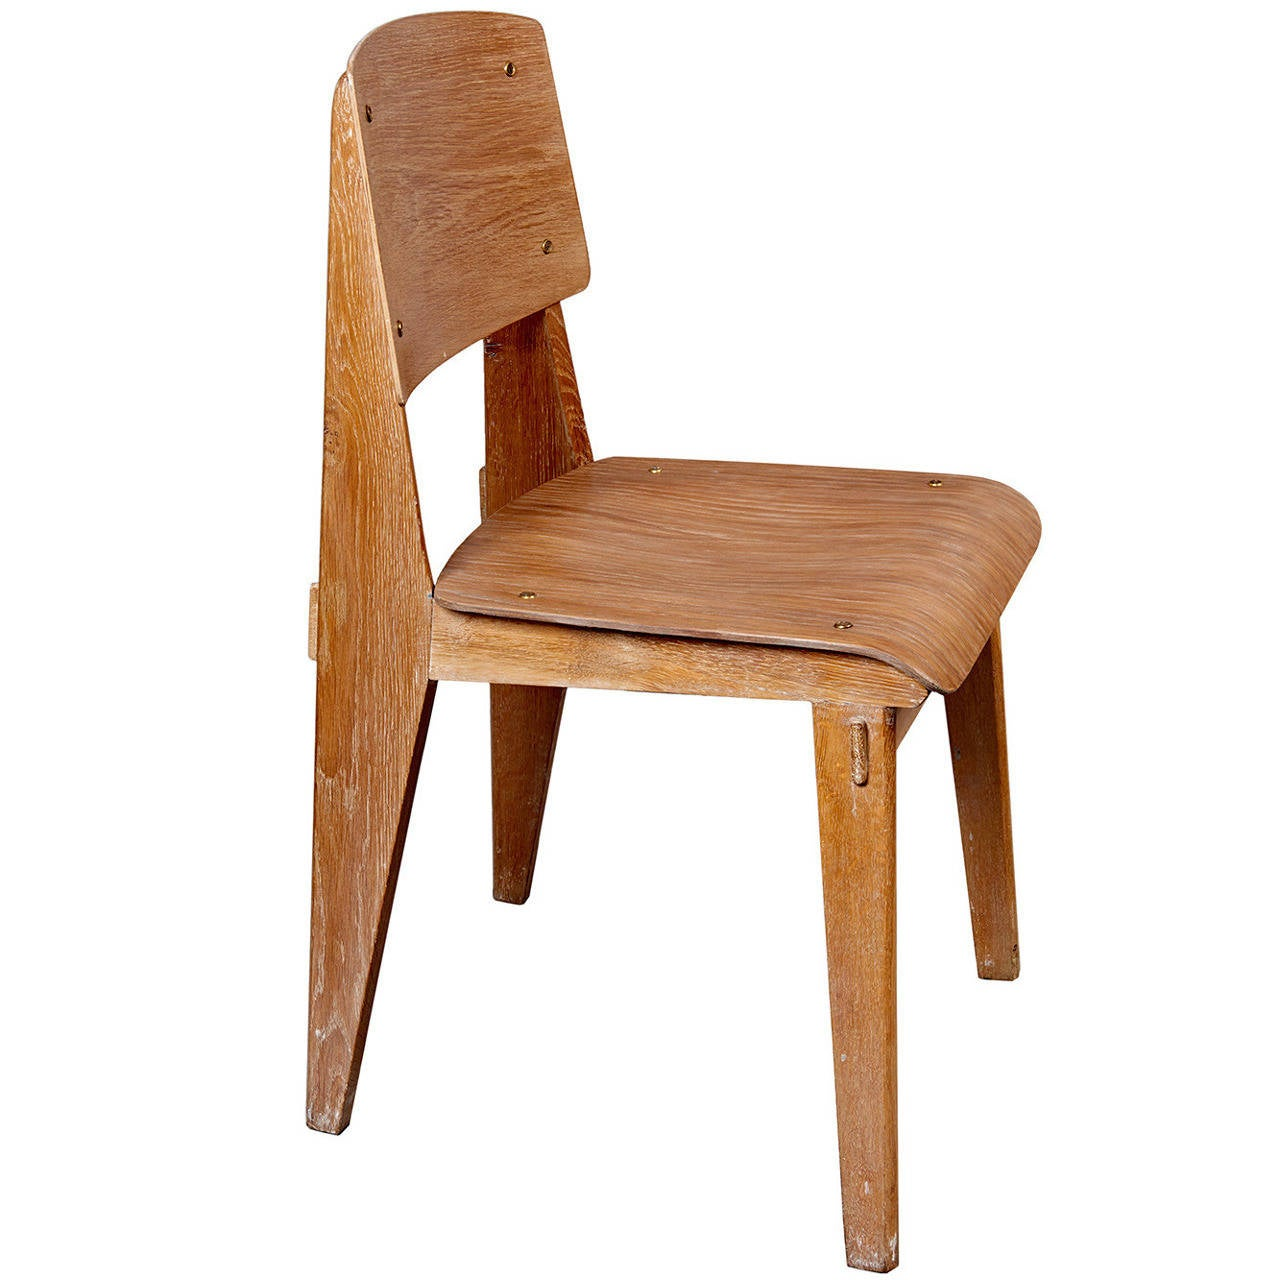 Standard chair tout bois by jean prouv for sale at 1stdibs - Chaise standard jean prouve ...